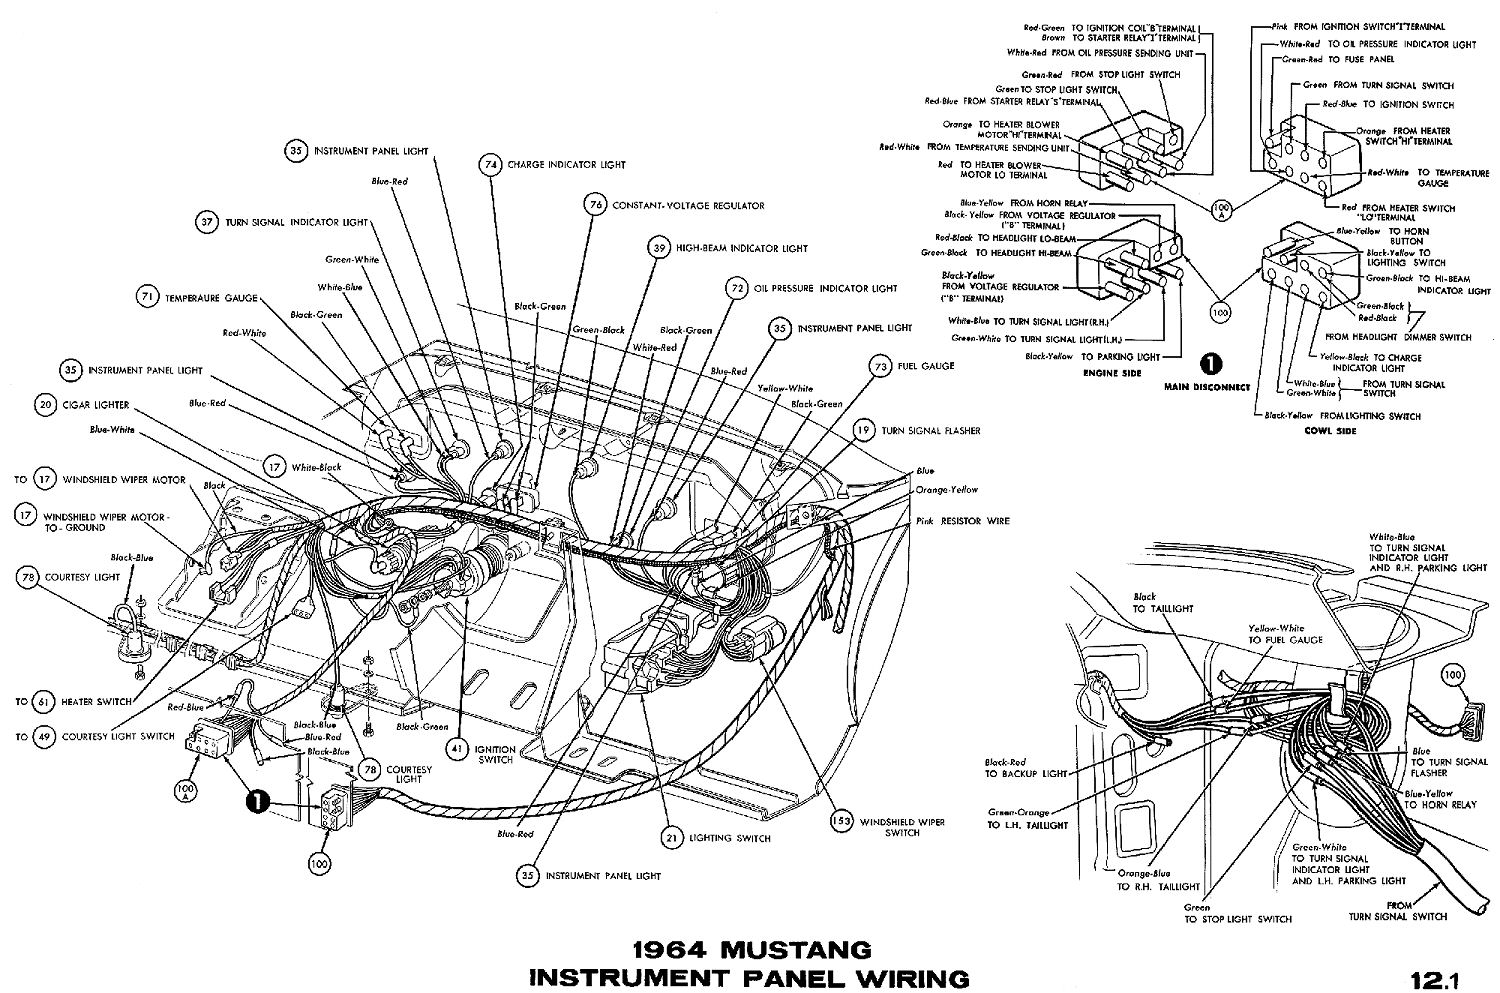 1976 corvette dash wiring diagram answer the questions based on venn 1964 cluster schematic mustang diagrams average joe restoration electrical instrument connections